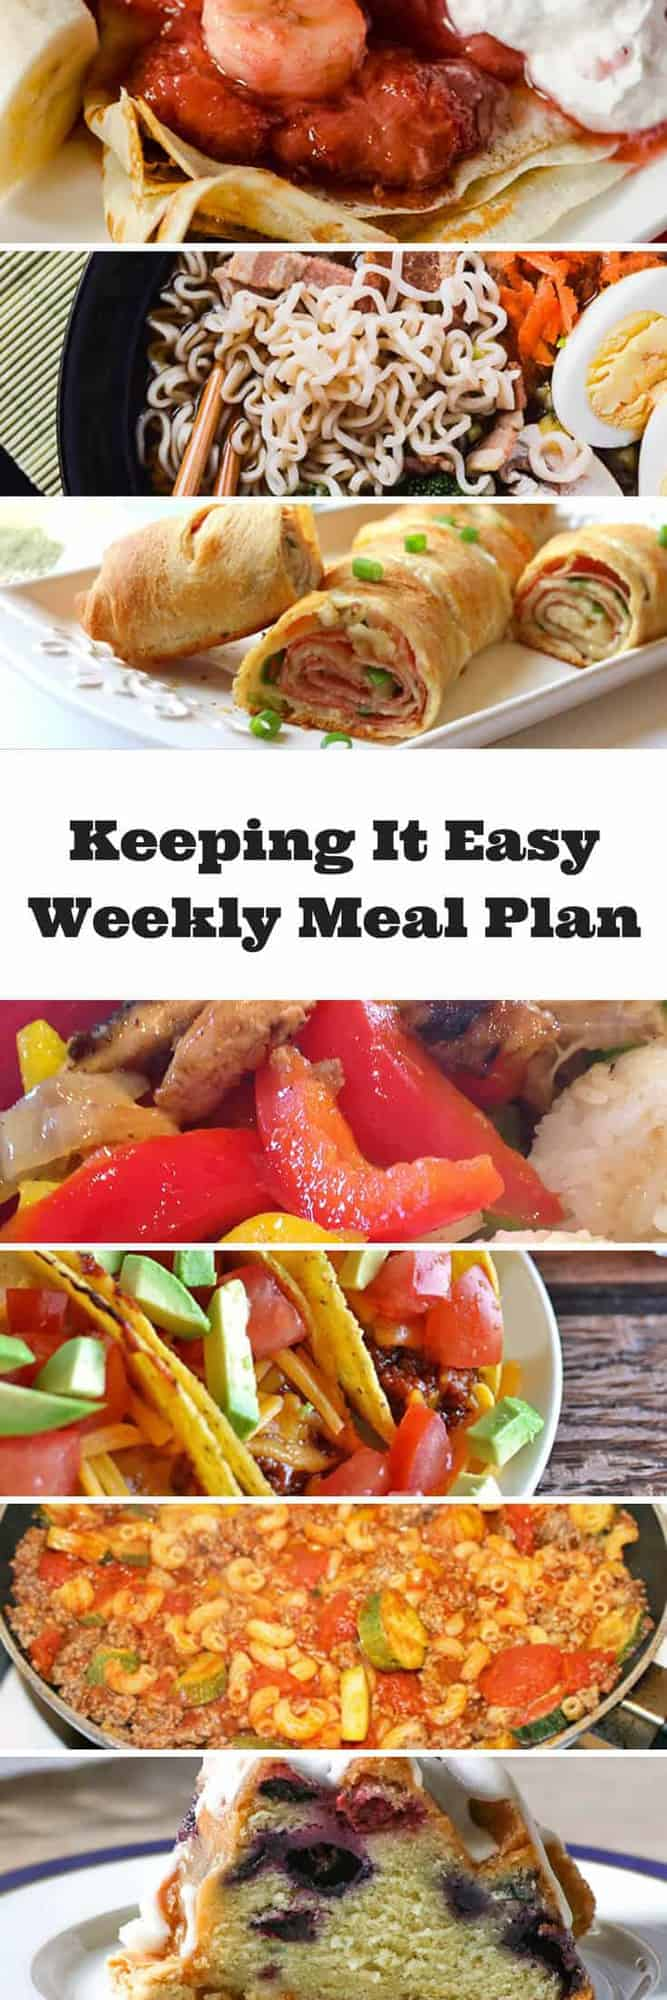 #KeepItEasy Weekly Meal Plan - Week 10